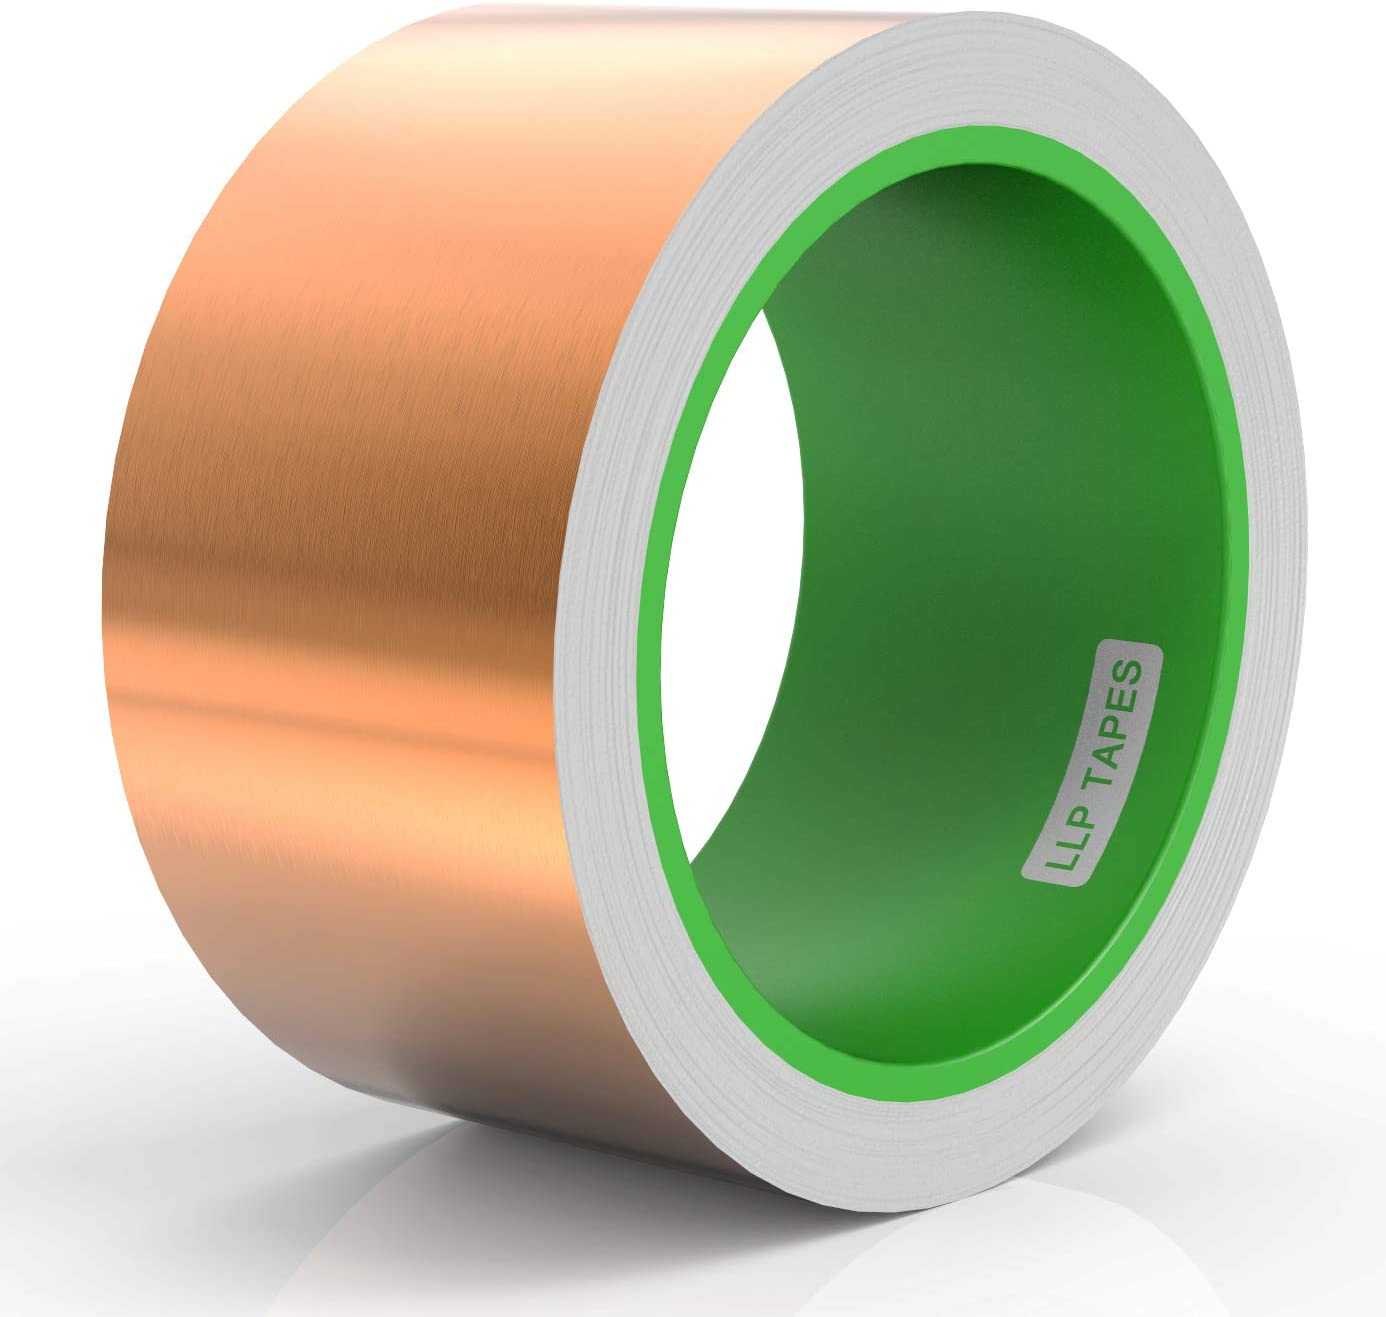 """LLPT Copper Foil Tape 2"""" x 33 Feet 3.15 Mil Dual Conductive Mult Sizes for EMI Shielding Stained Glass Circuit Crafts Slug Moss Repellent Electrical Repairs Grounding Strong Adhesive (CF500)"""